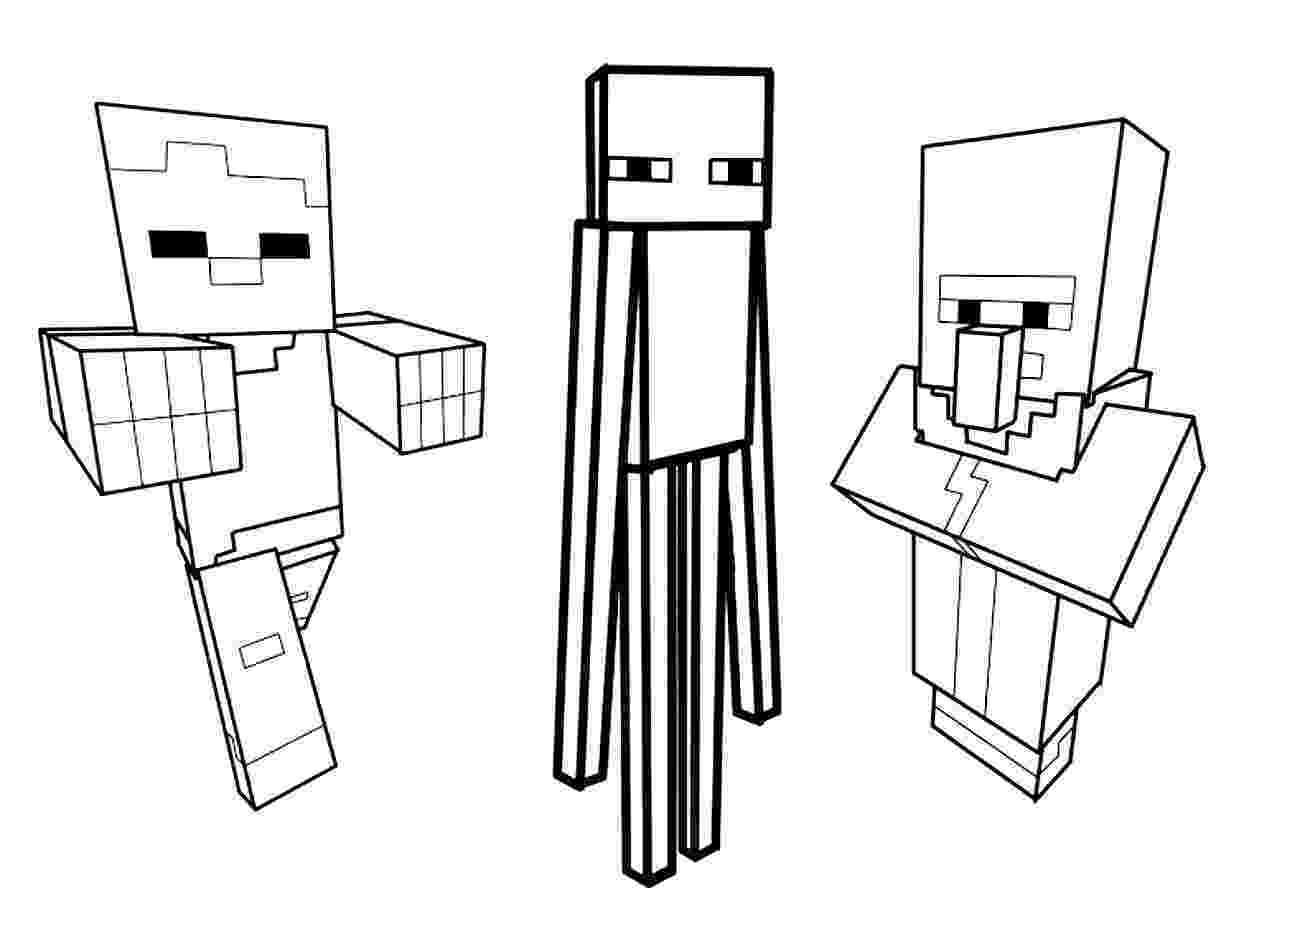 minecraft color pictures minecraft coloring page minecraft birthday pinterest color pictures minecraft